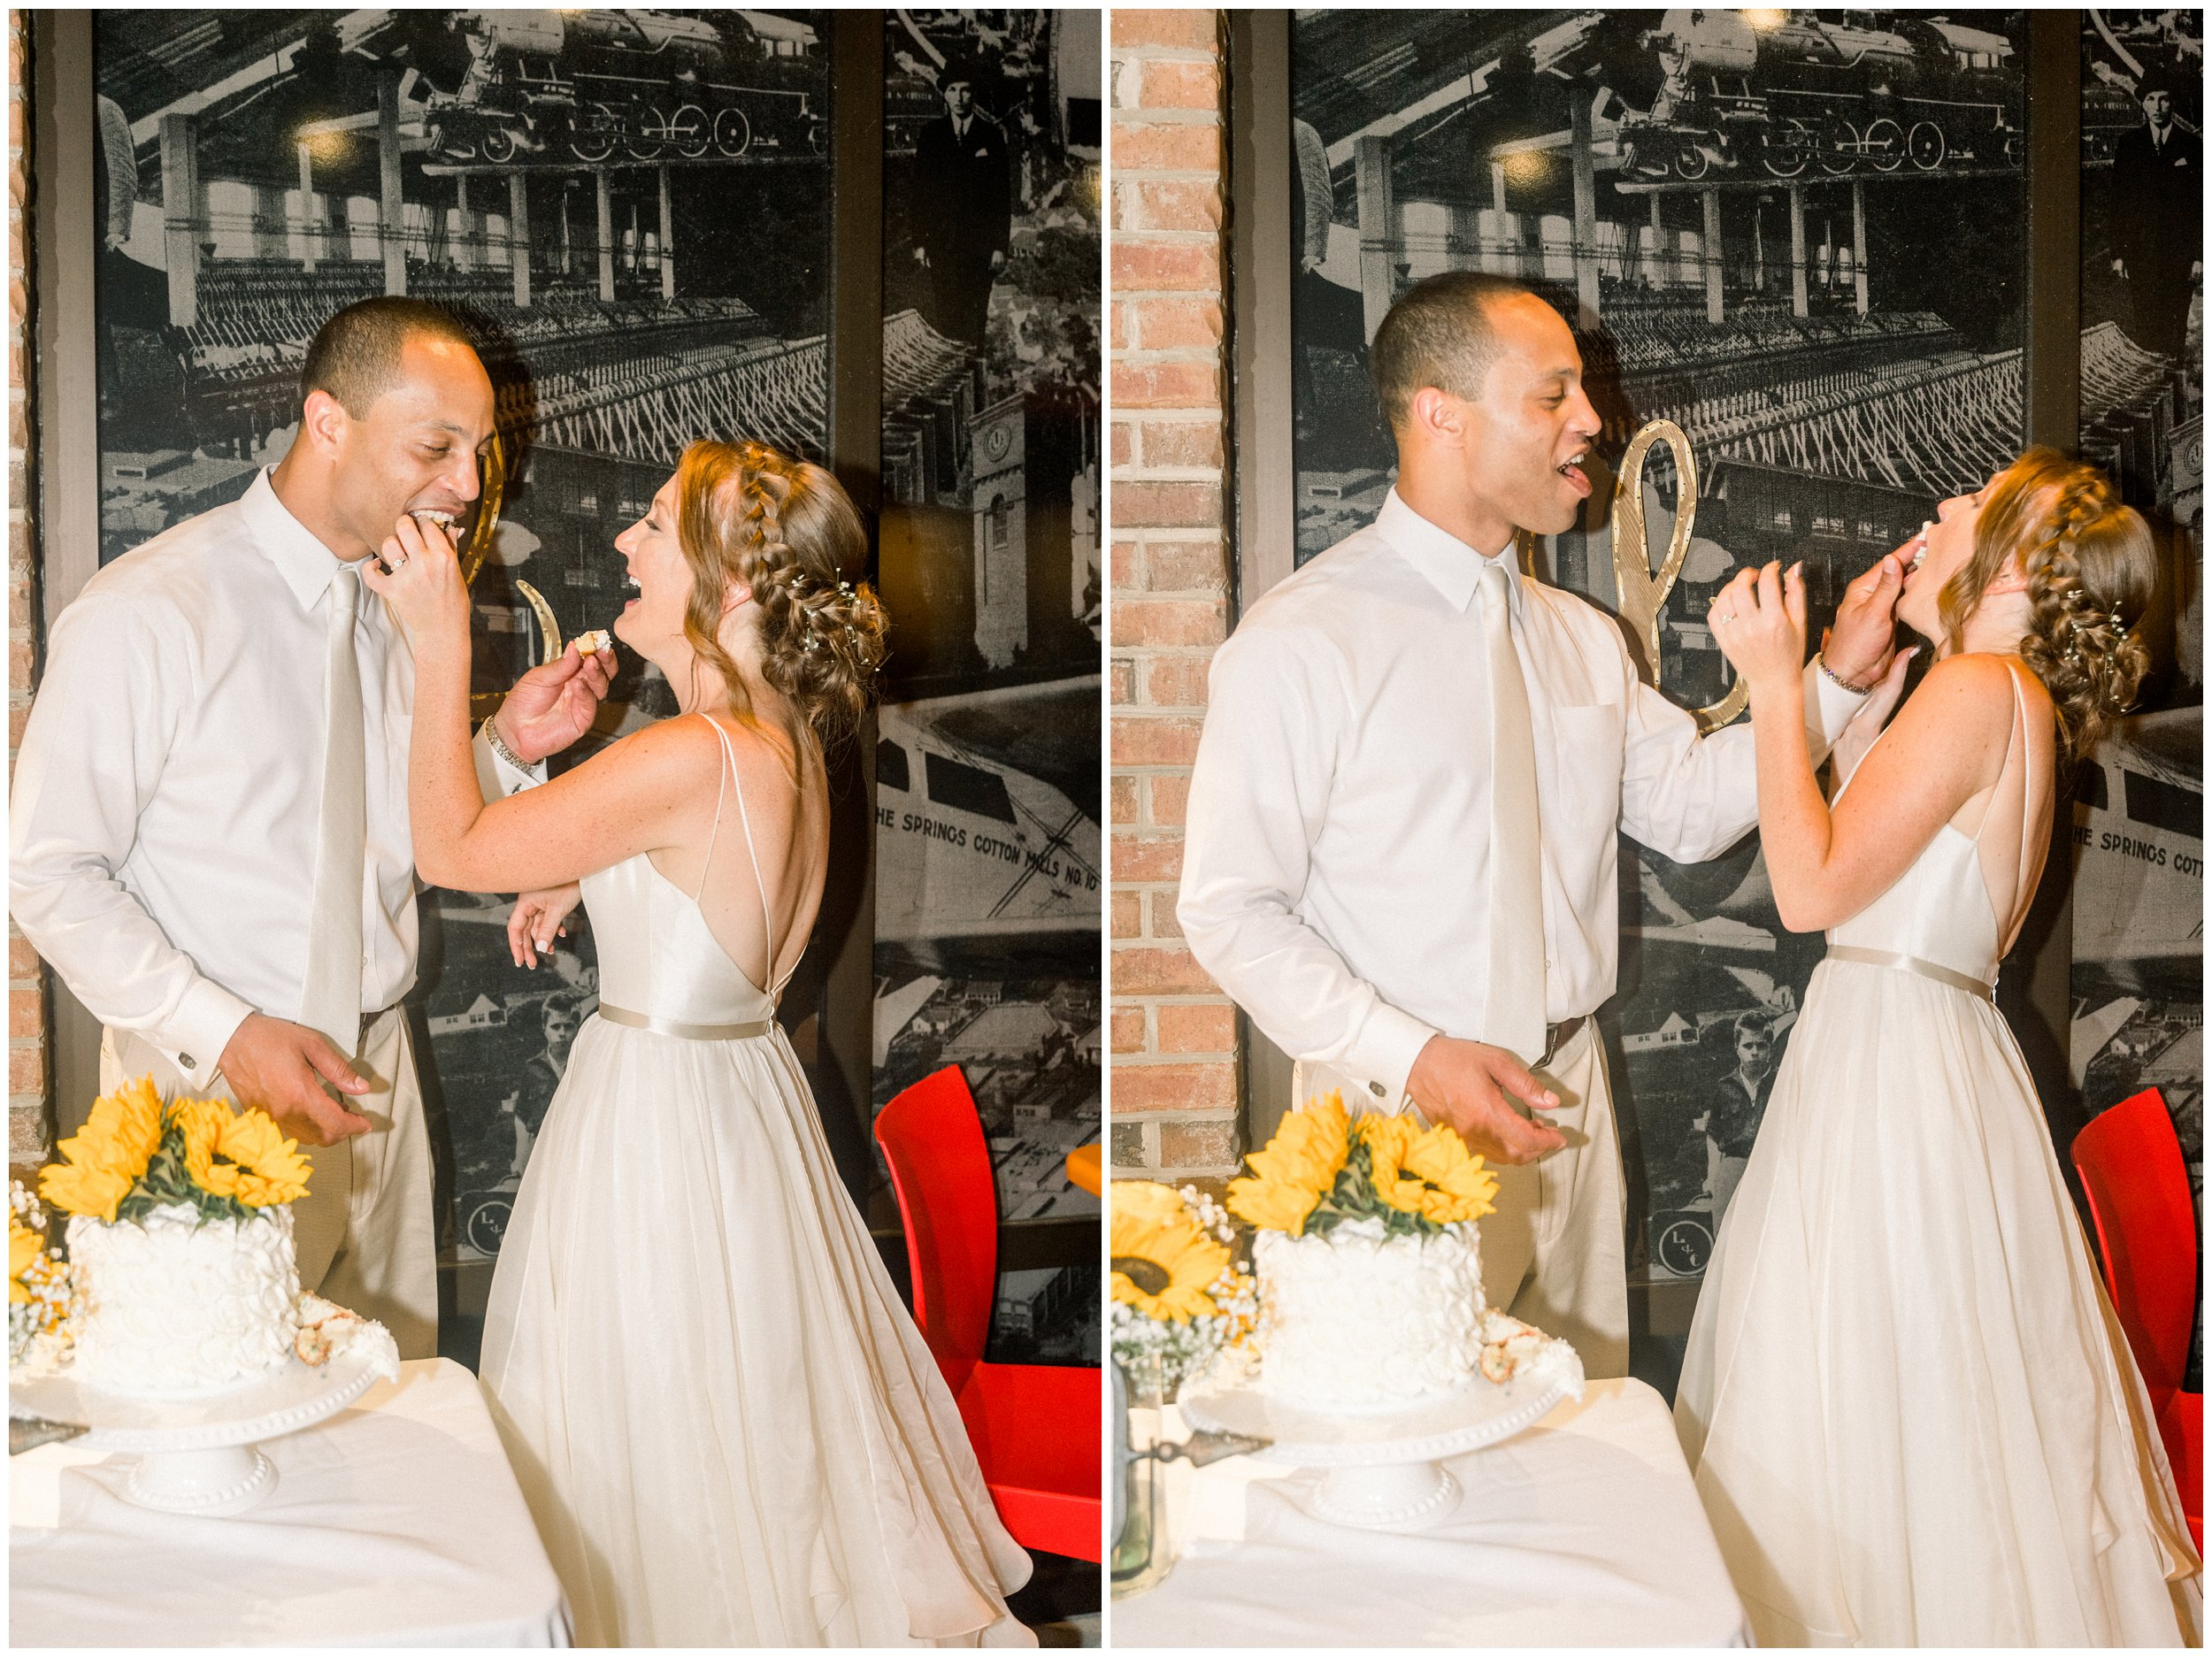 bride and groom feeding cake to each other